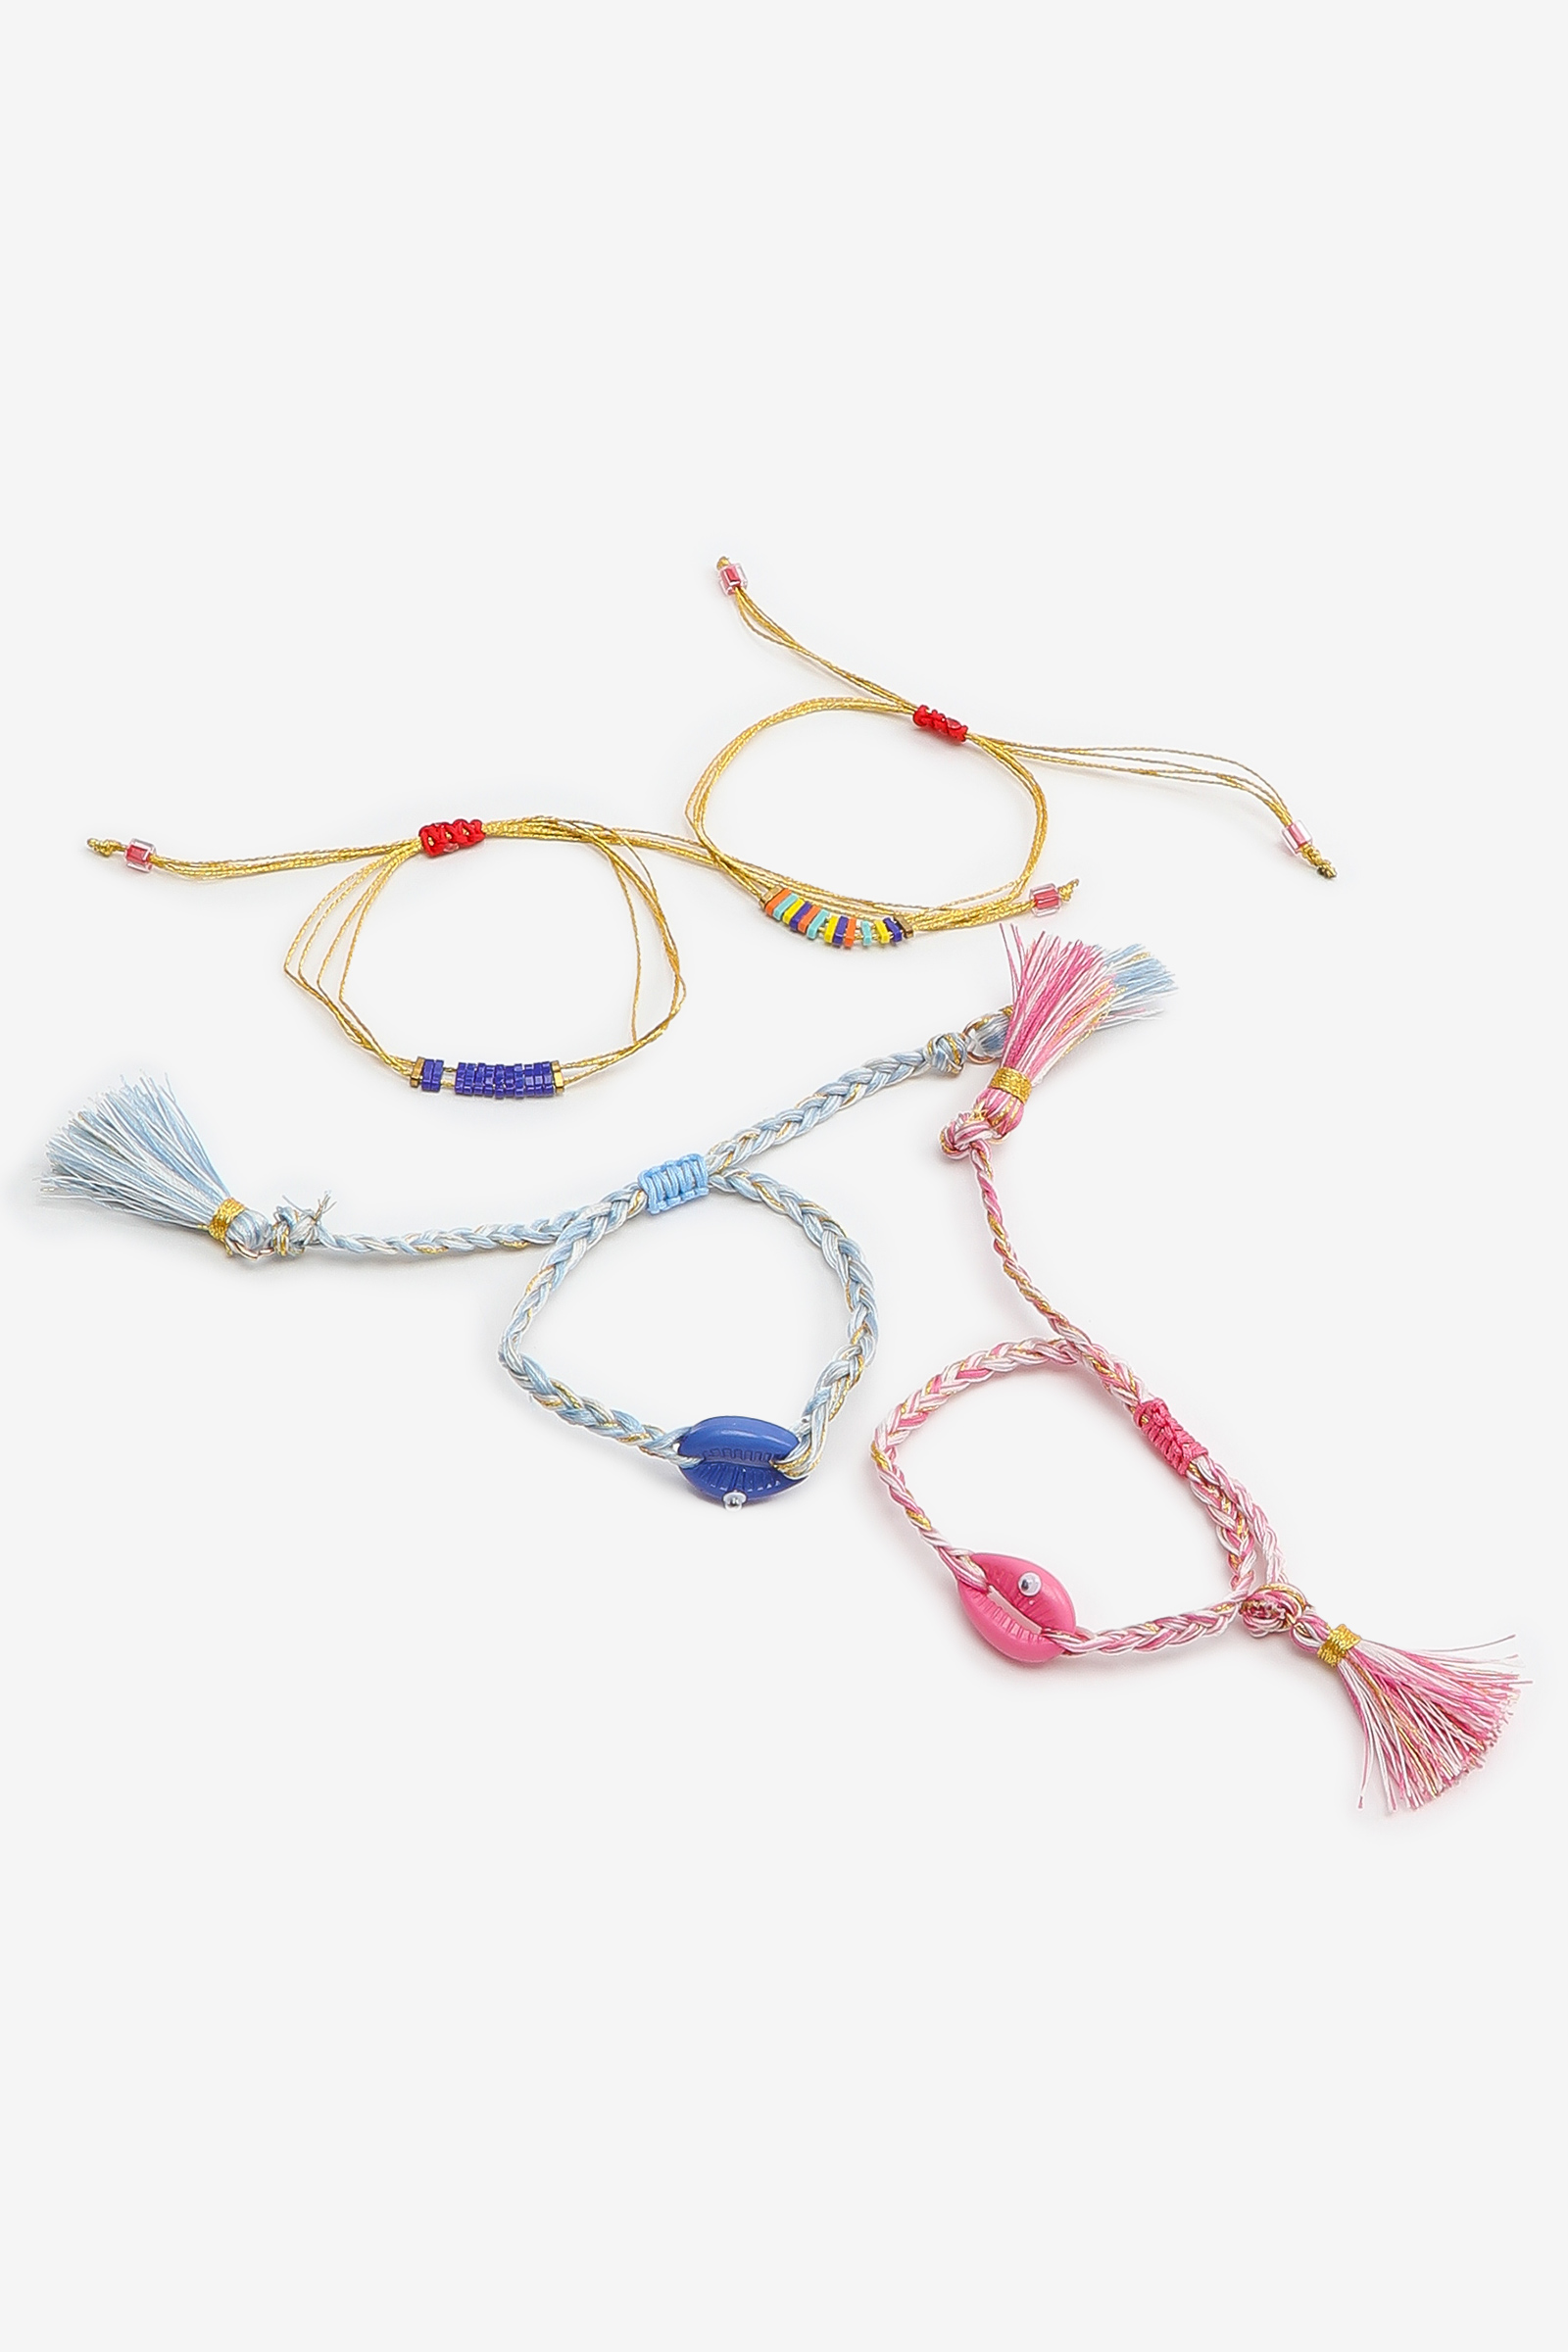 Seashell Cord Anklets